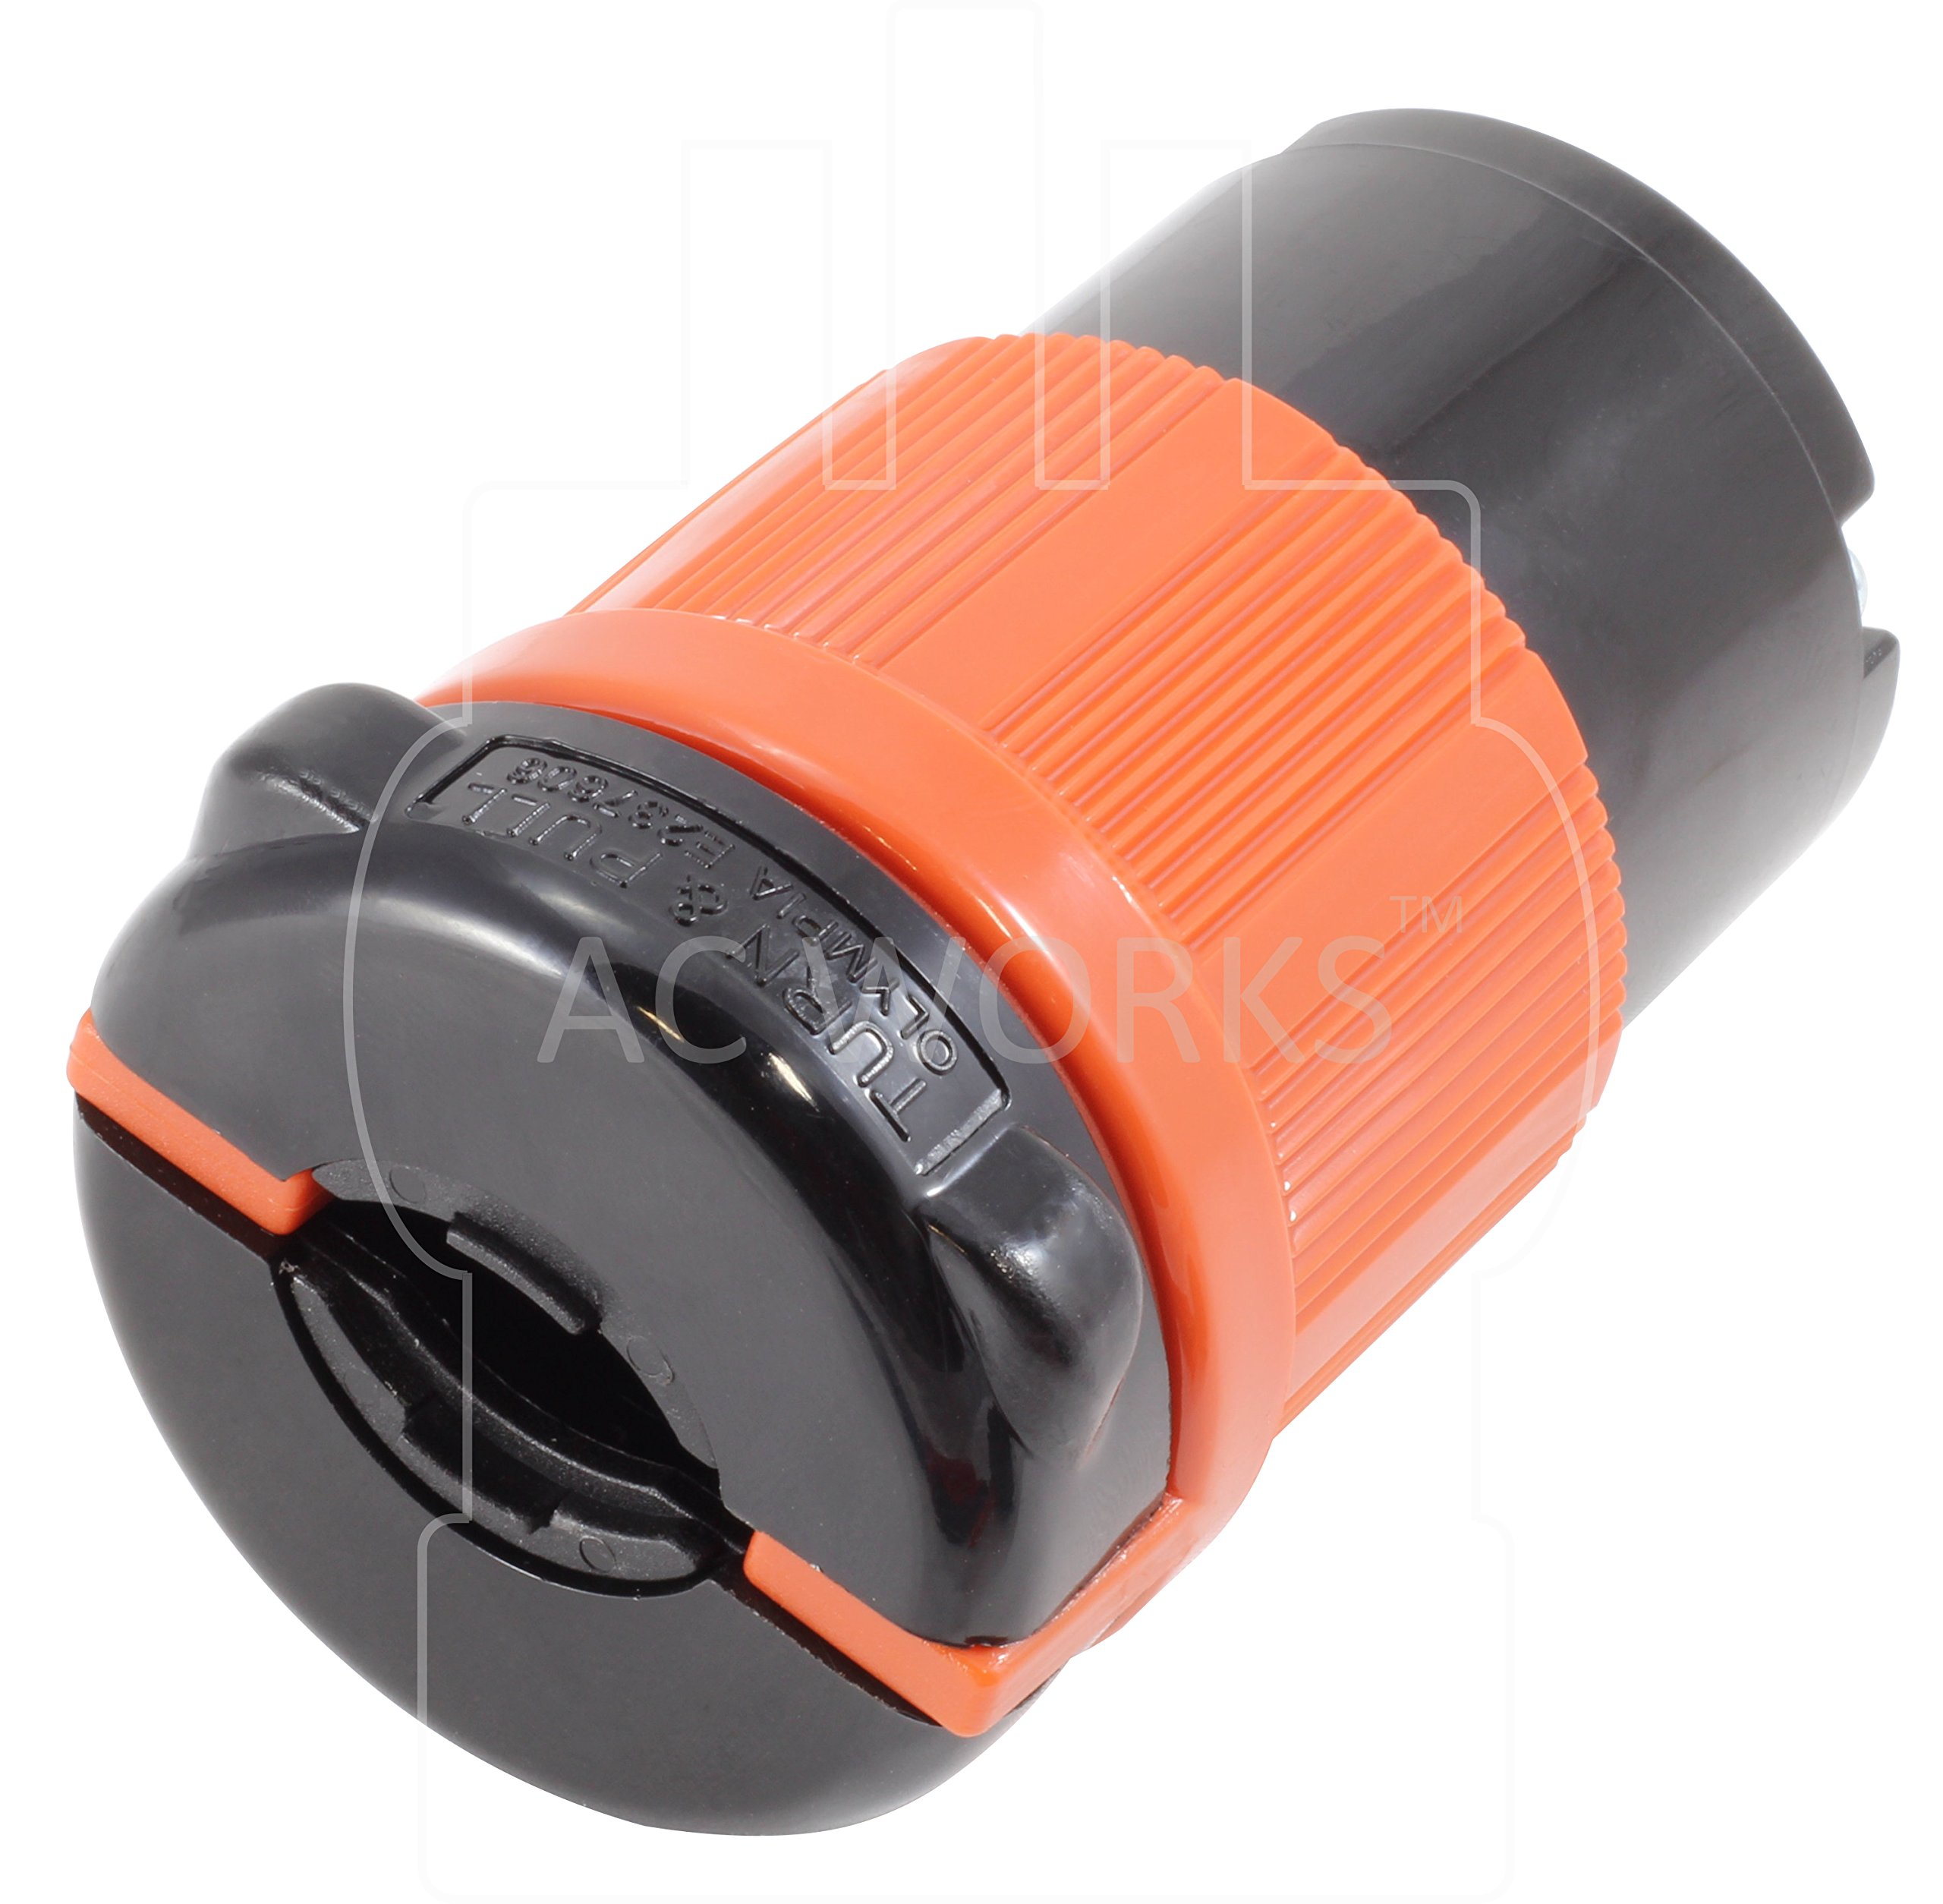 AC WORKS [ASL620R] NEMA L6-20R 20Amp 250Volt 3 Prong Locking Female Connector With UL, C-UL Approval by AC WORKS (Image #3)